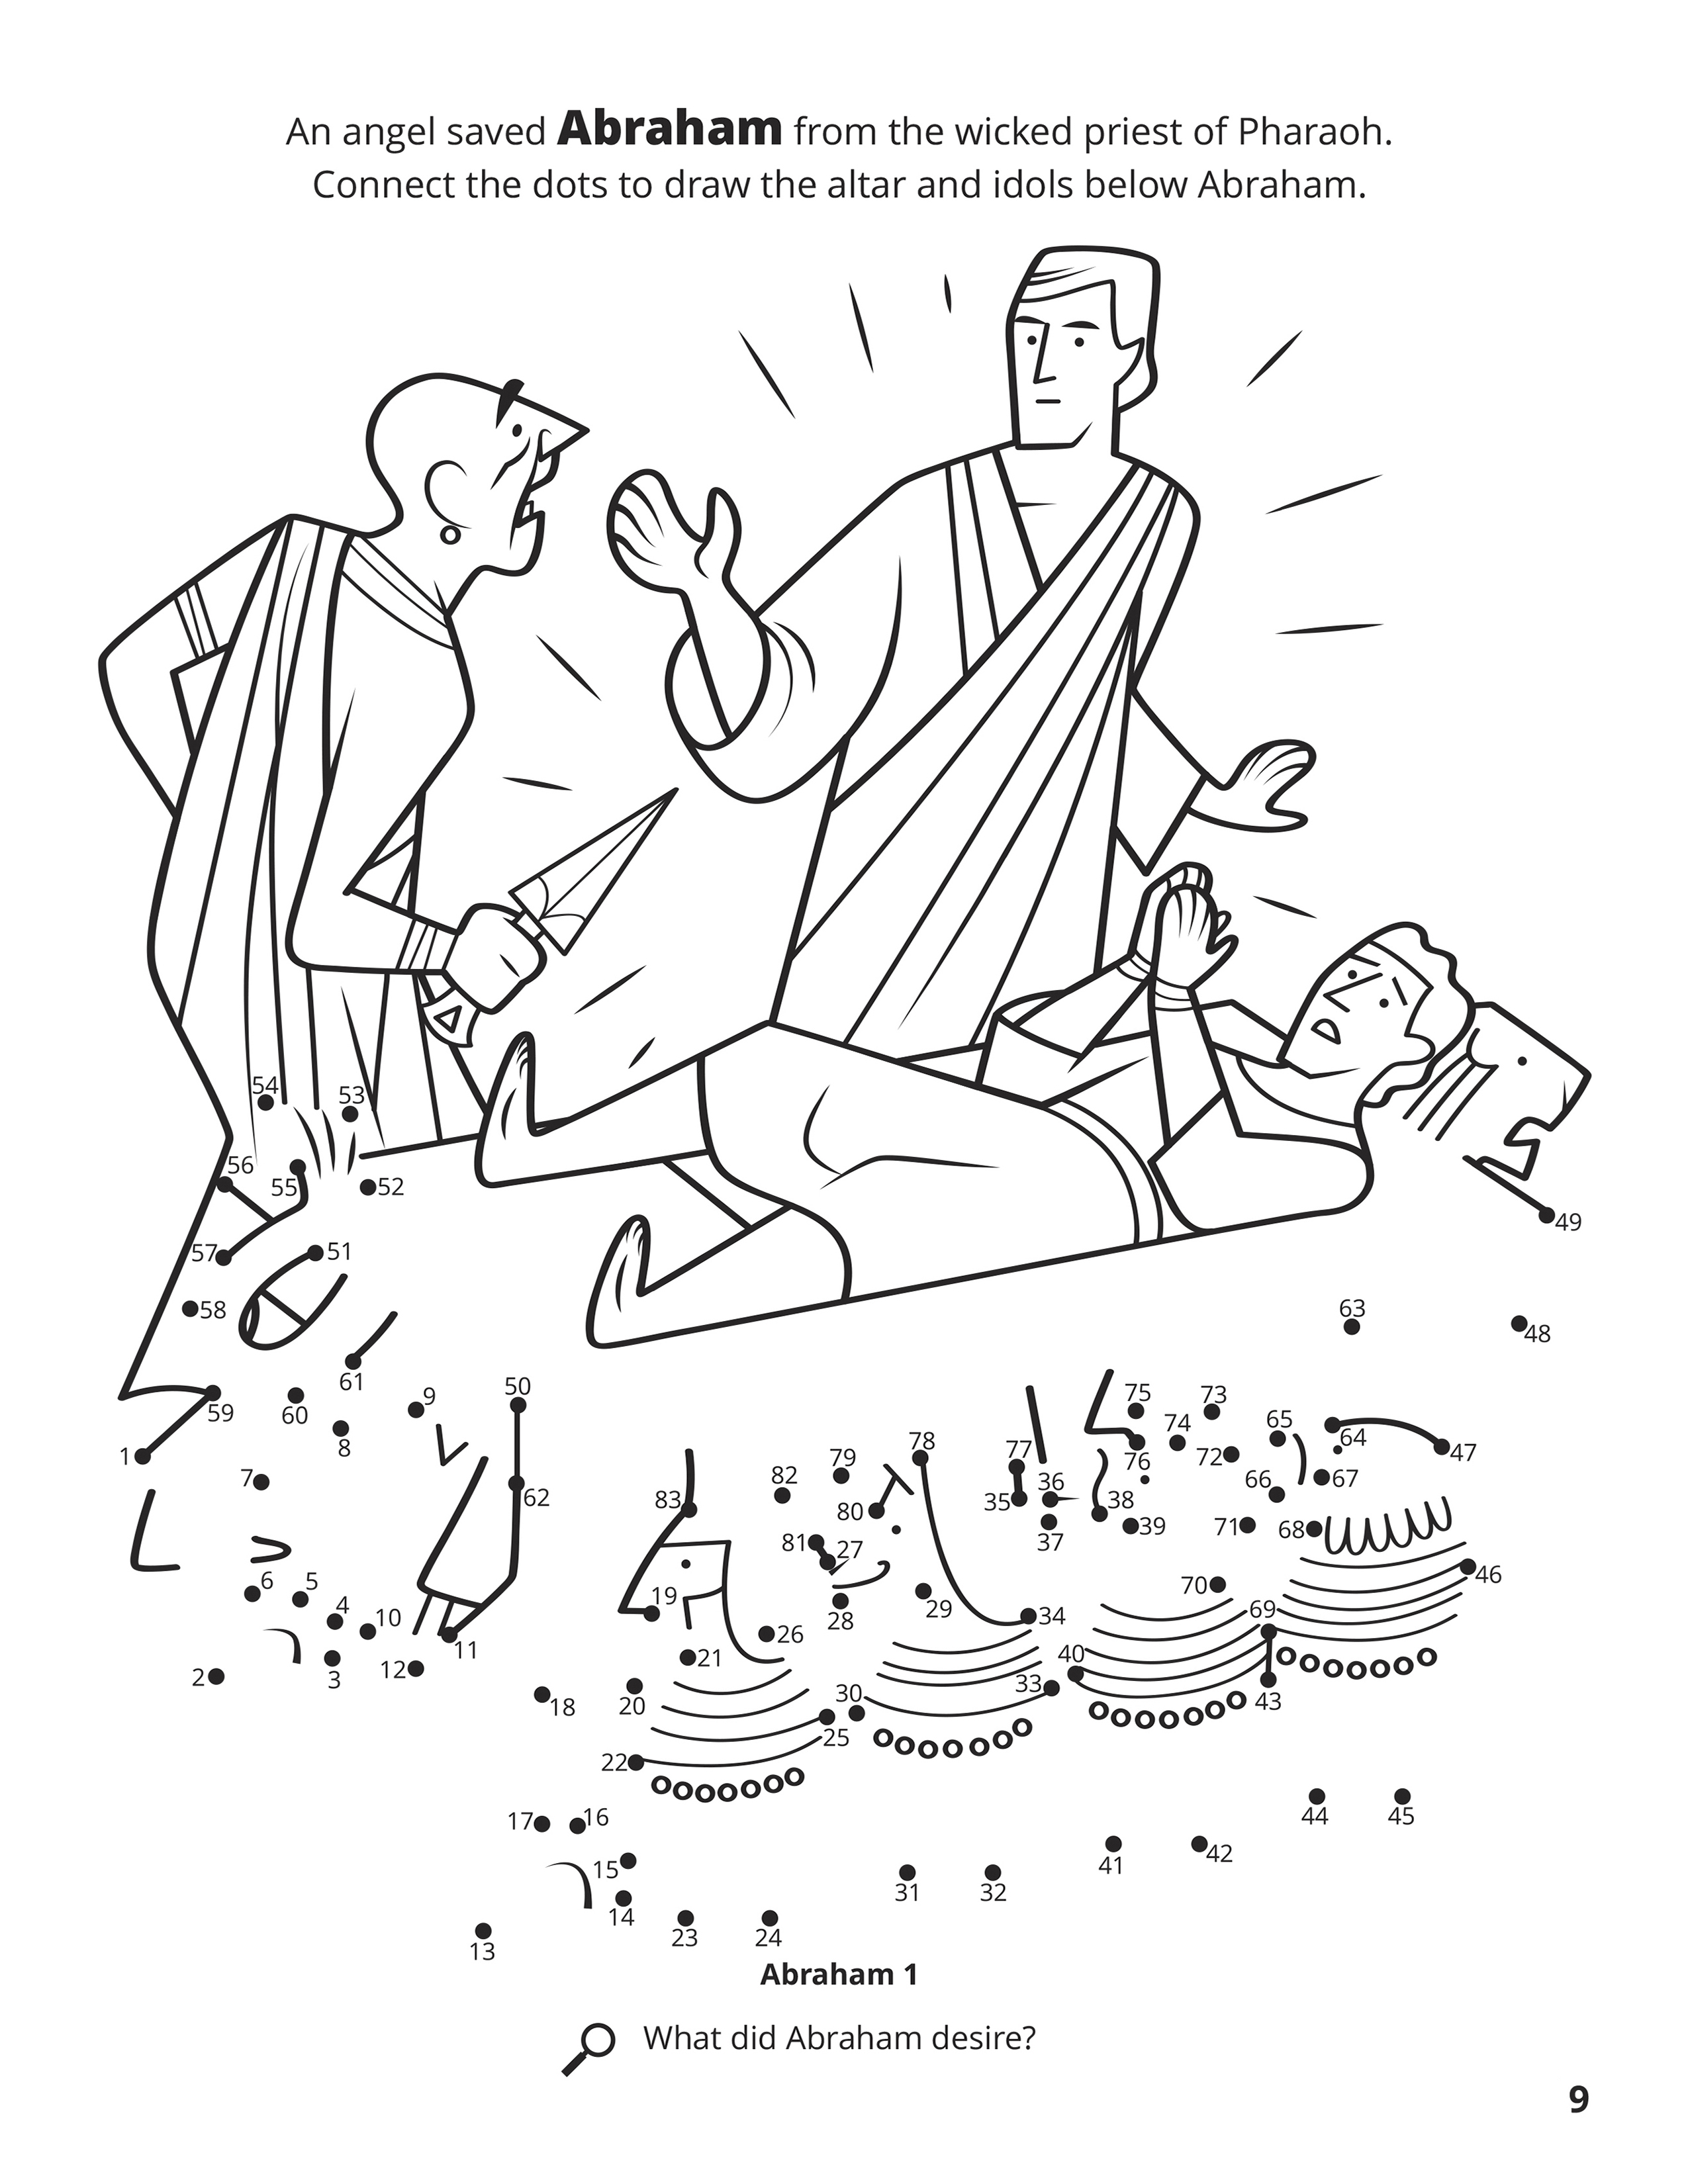 An angel saved Abraham from the wicked priest of Pharaoh. Connect the dots to draw the altar and idols below Abraham. Location in the Scriptures: Abraham 1. Search the Scriptures: What did Abraham desire?